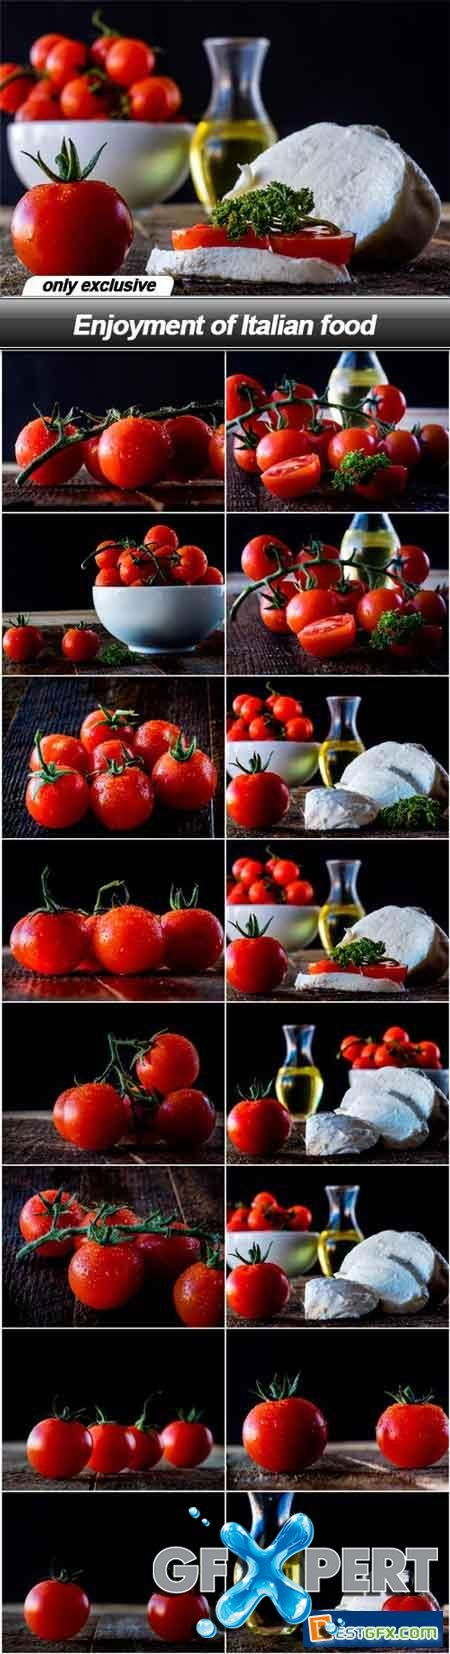 Enjoyment of Italian food - 16 UHQ JPEG